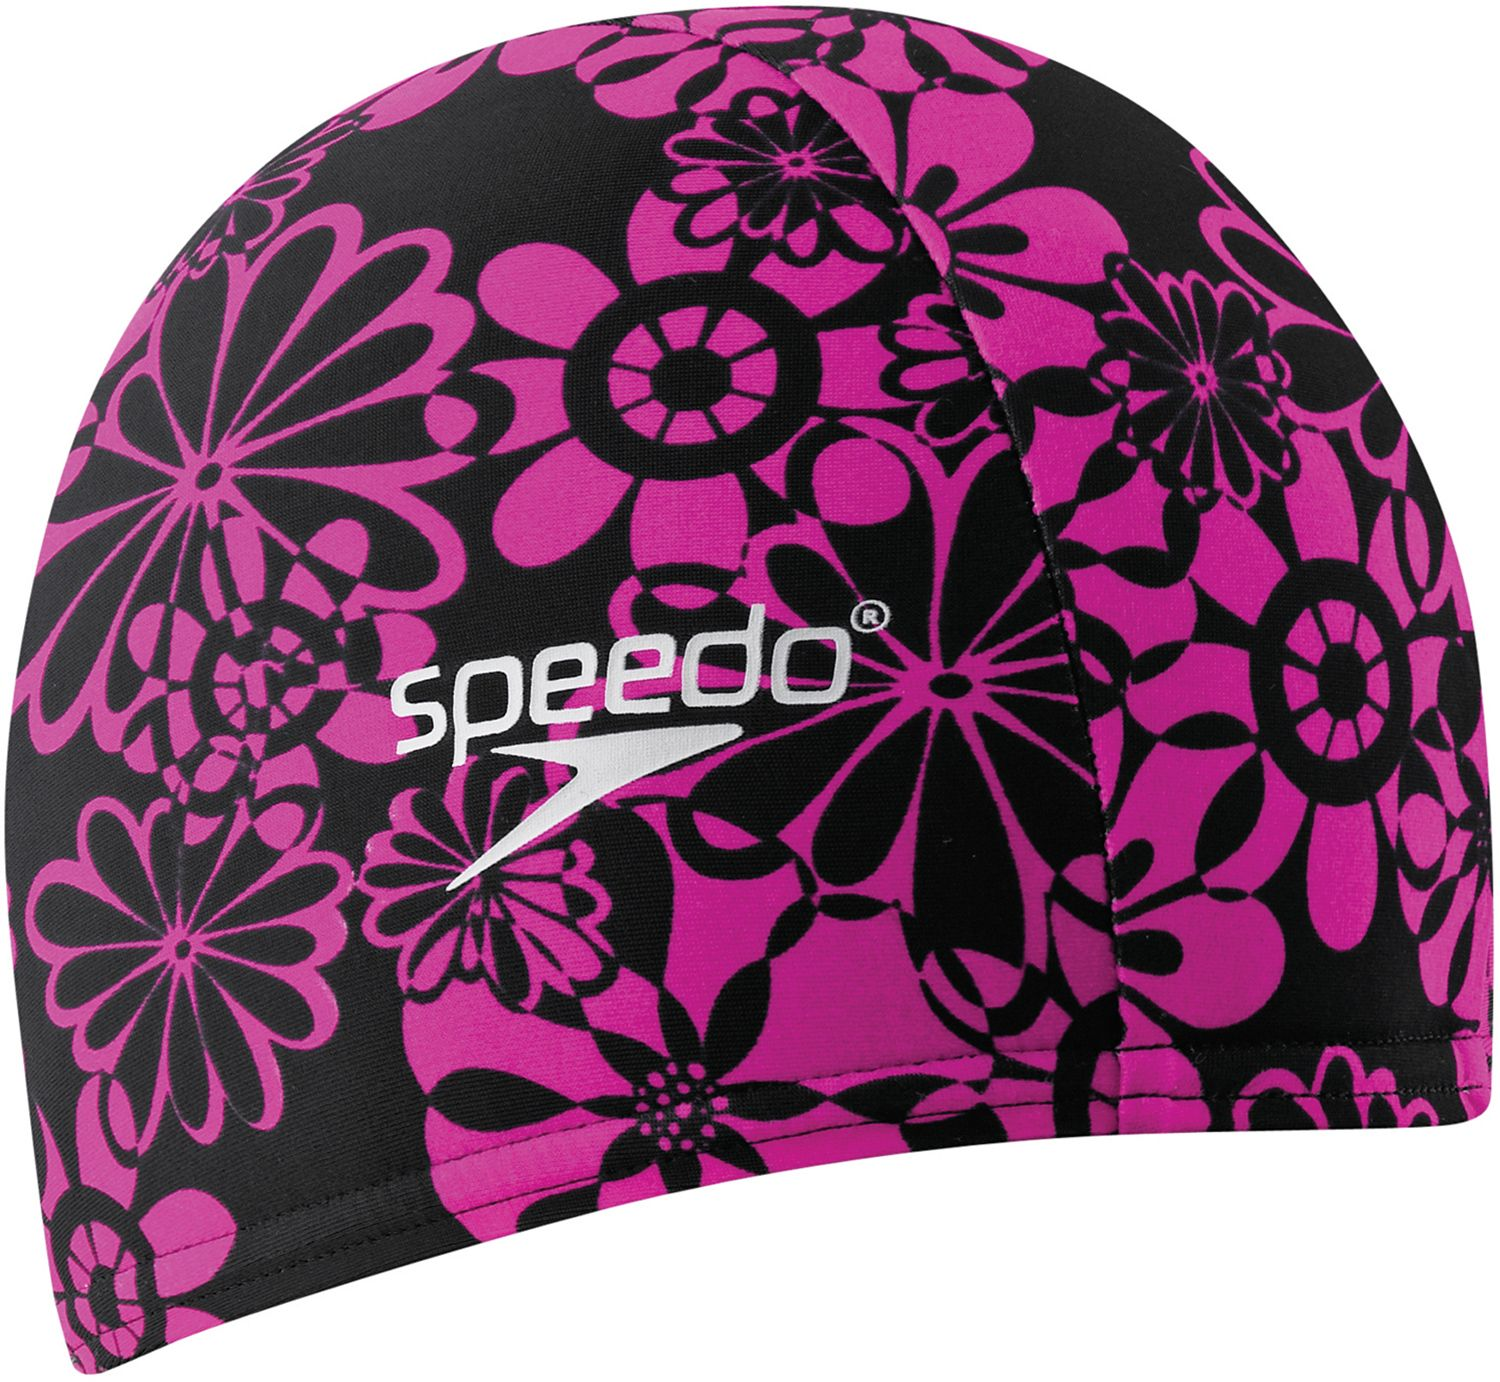 swim caps for adults kids dick s sporting goods product image speedo solid lycra long hair swim cap